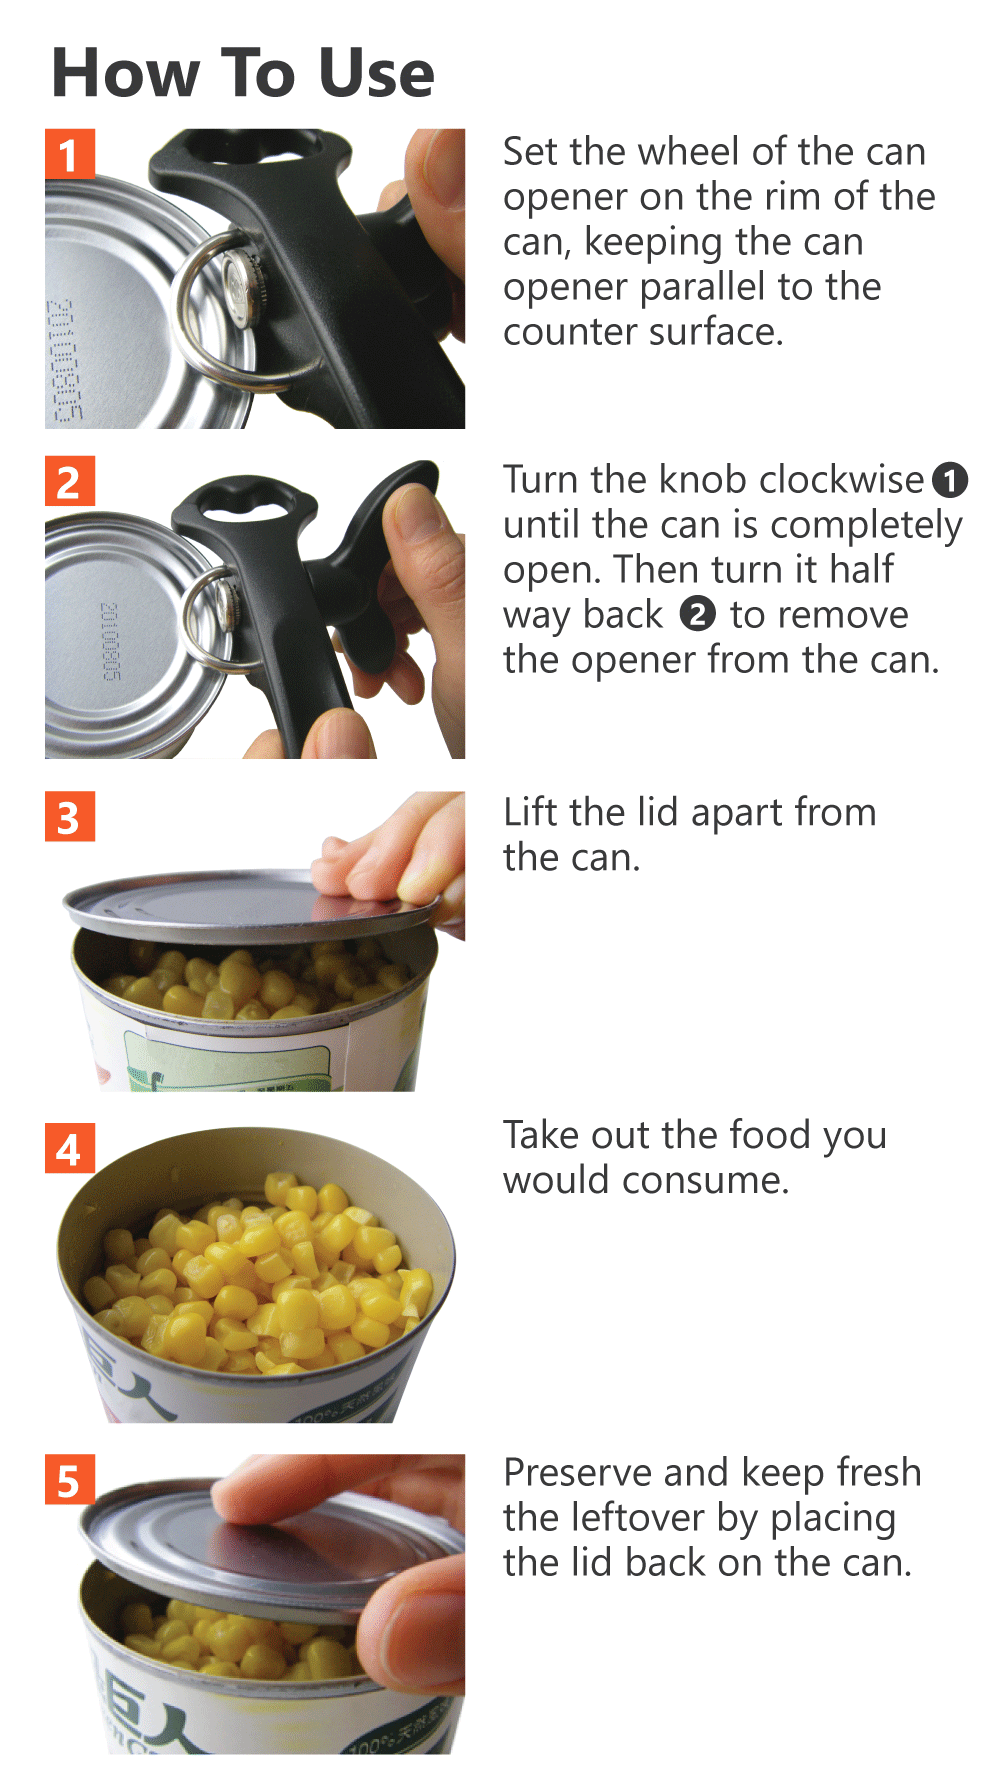 How to use safety can opener